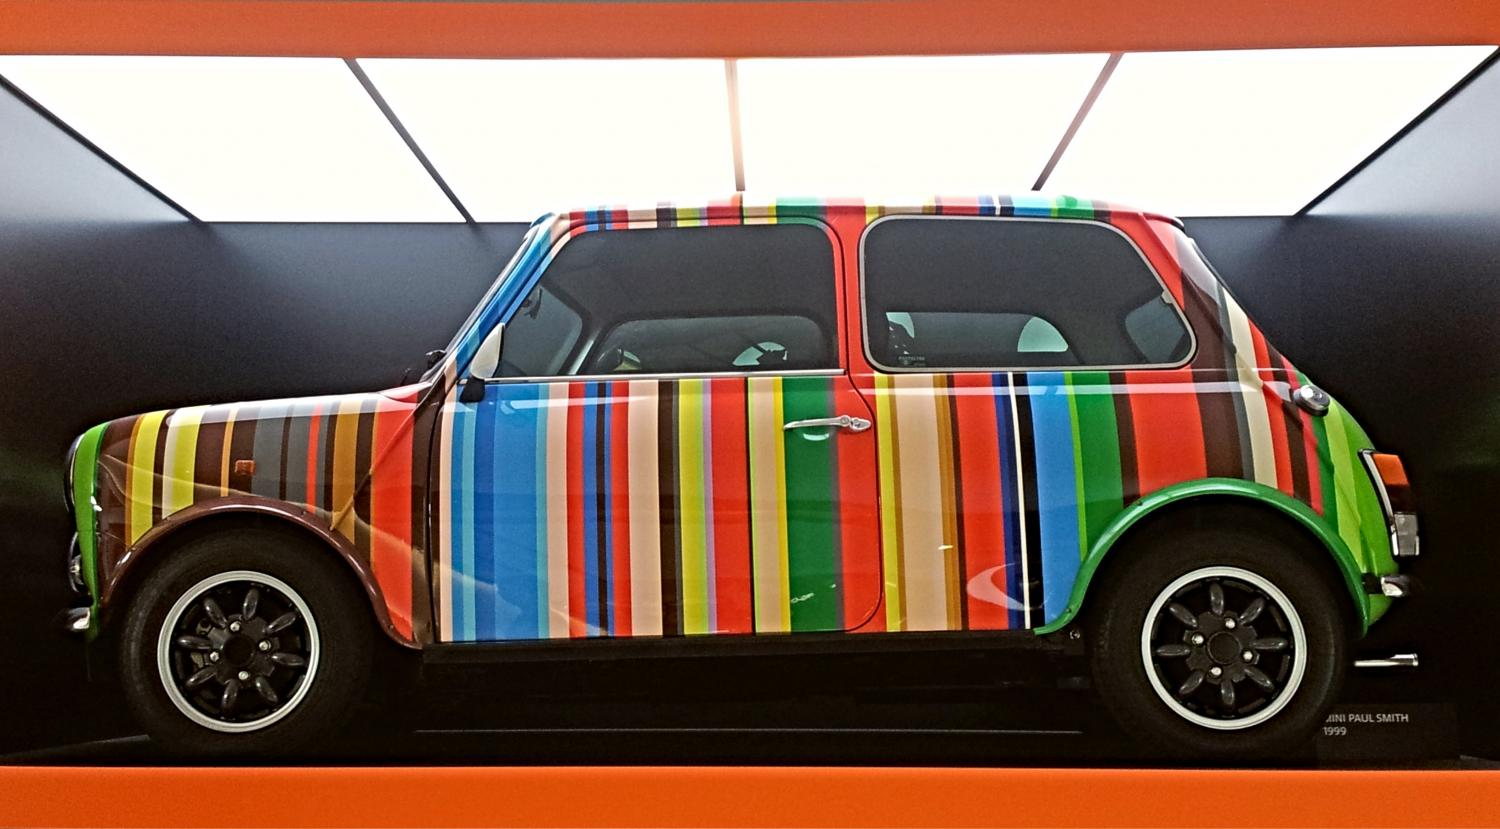 The Paul Smith mini at the BMW Museum, Munich